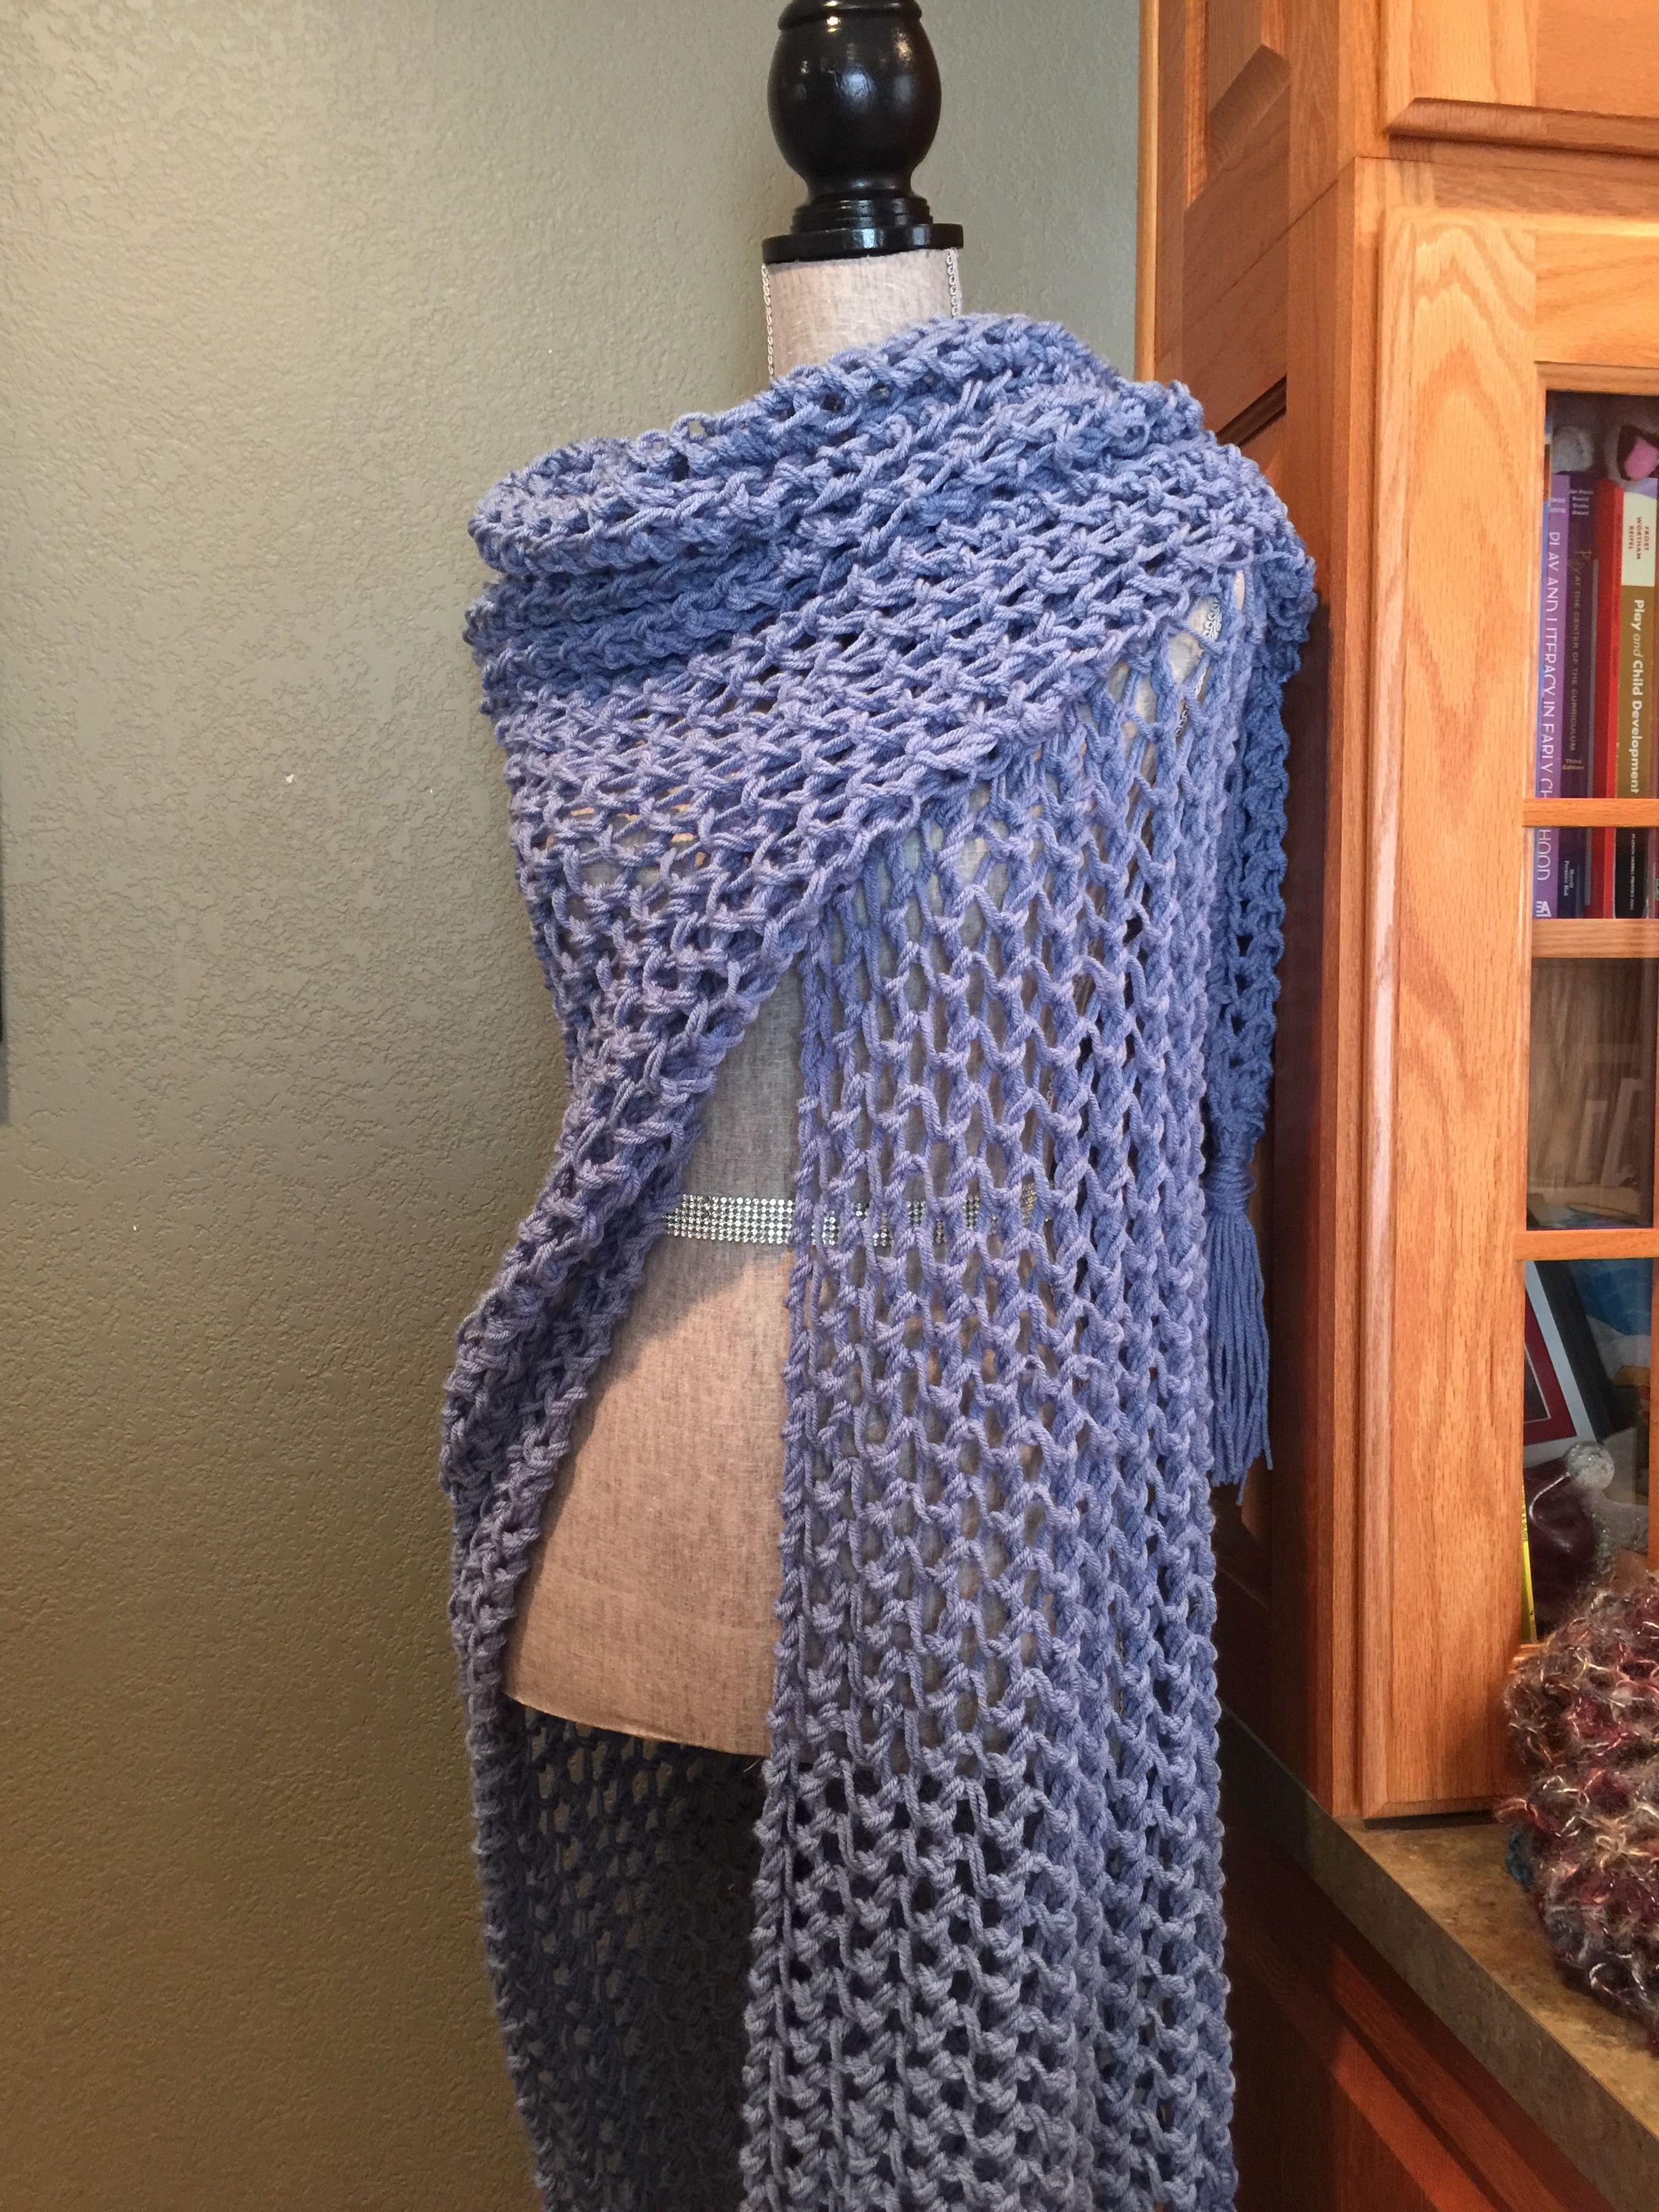 Lovers knot prayer shawl my designs pinterest prayer shawl lovers knot prayer shawl prayer shawl patternsbeginner knitting bankloansurffo Image collections